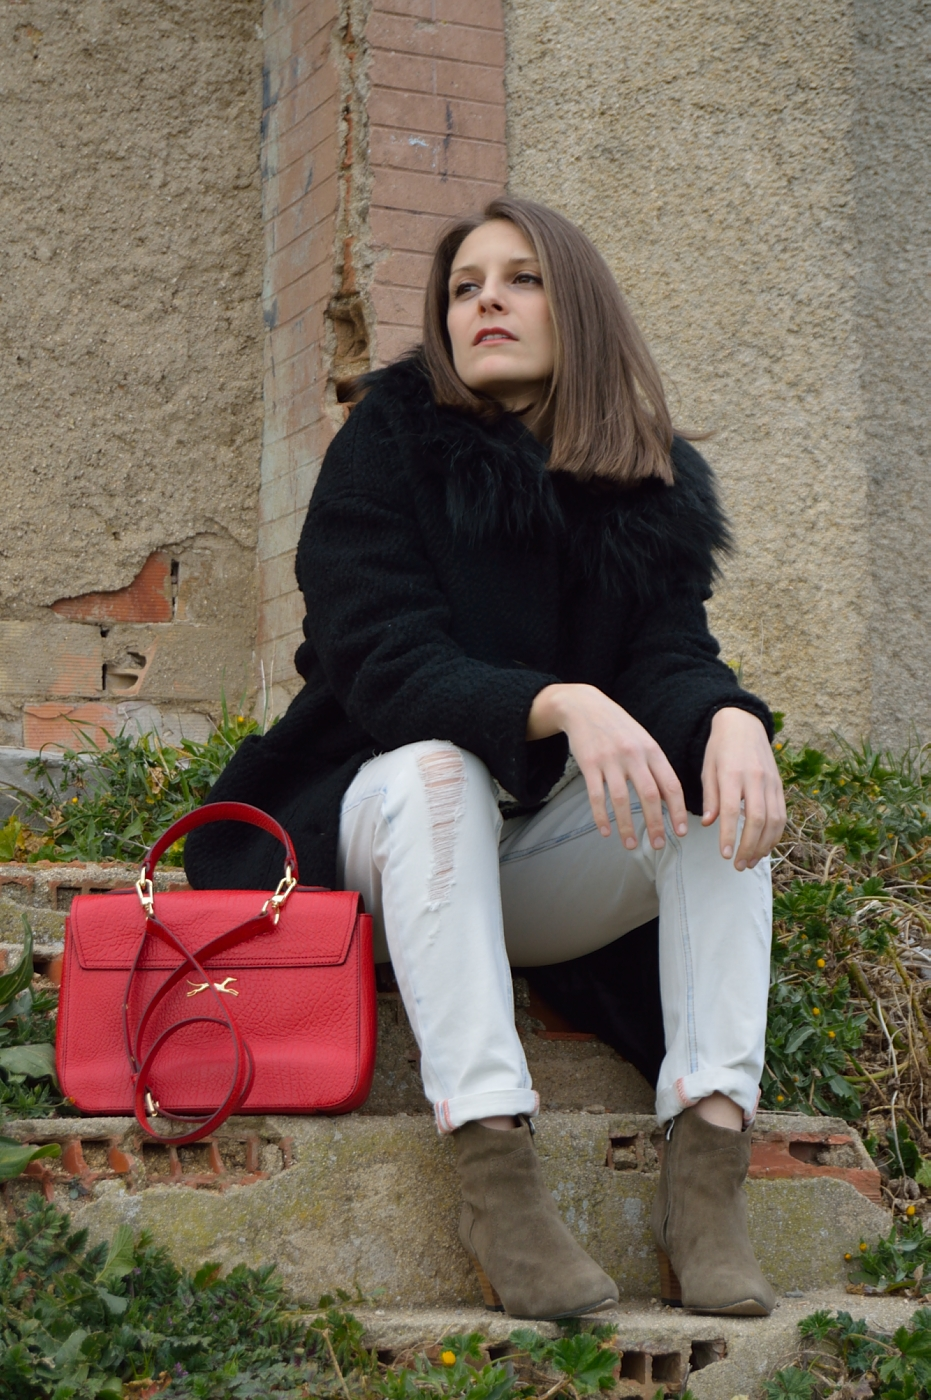 lara-vazquez-mad-lula-style-look-style-ootd-chic-lady-colors